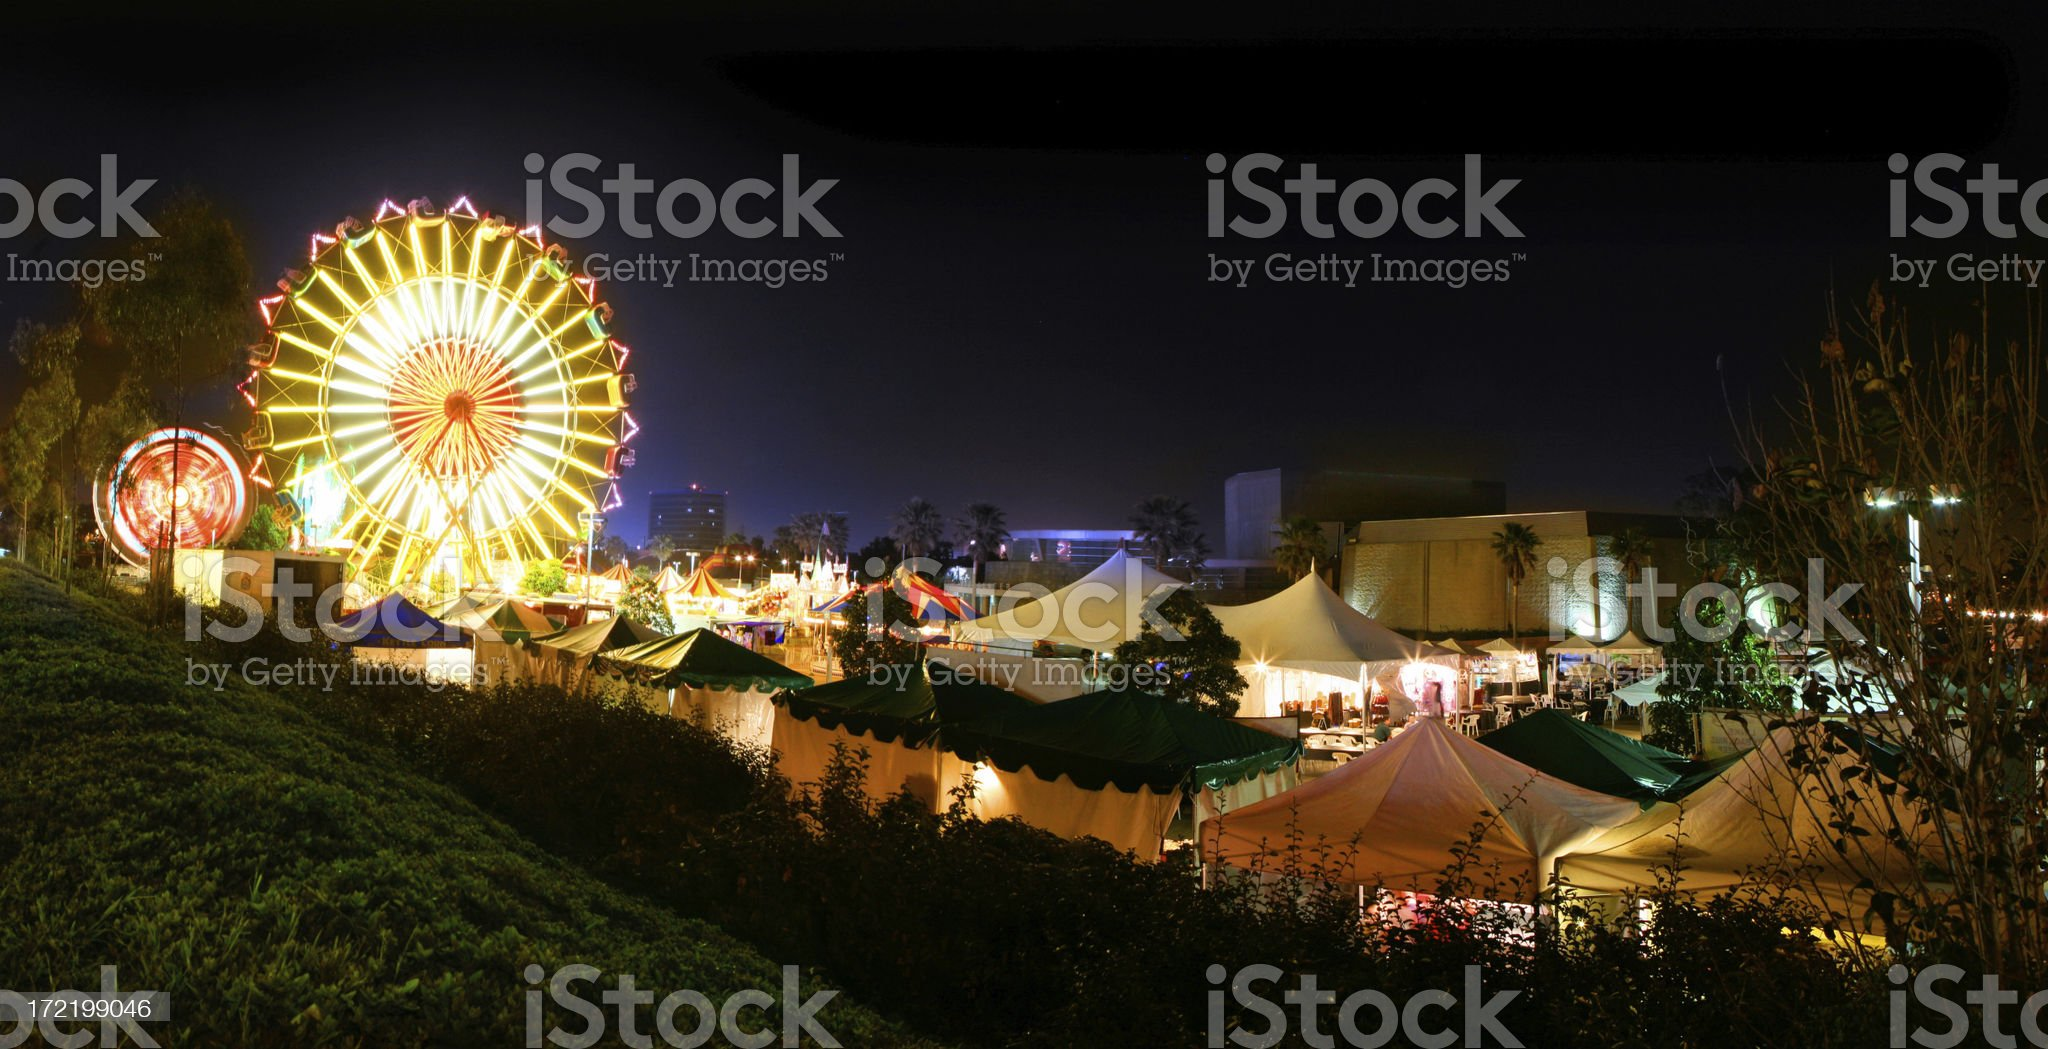 Carnival Night royalty-free stock photo